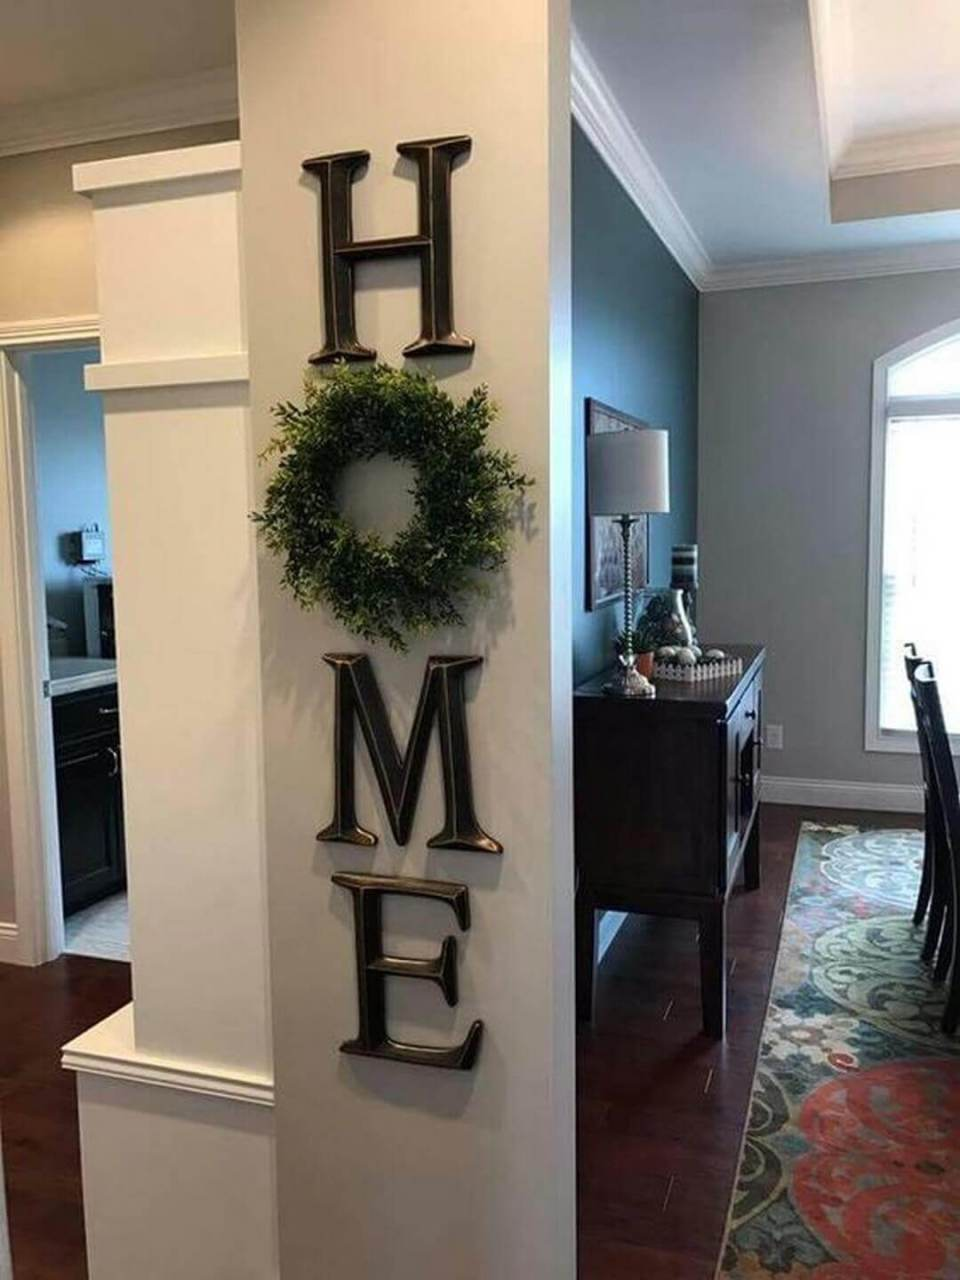 Home Is Where the Wreath Is